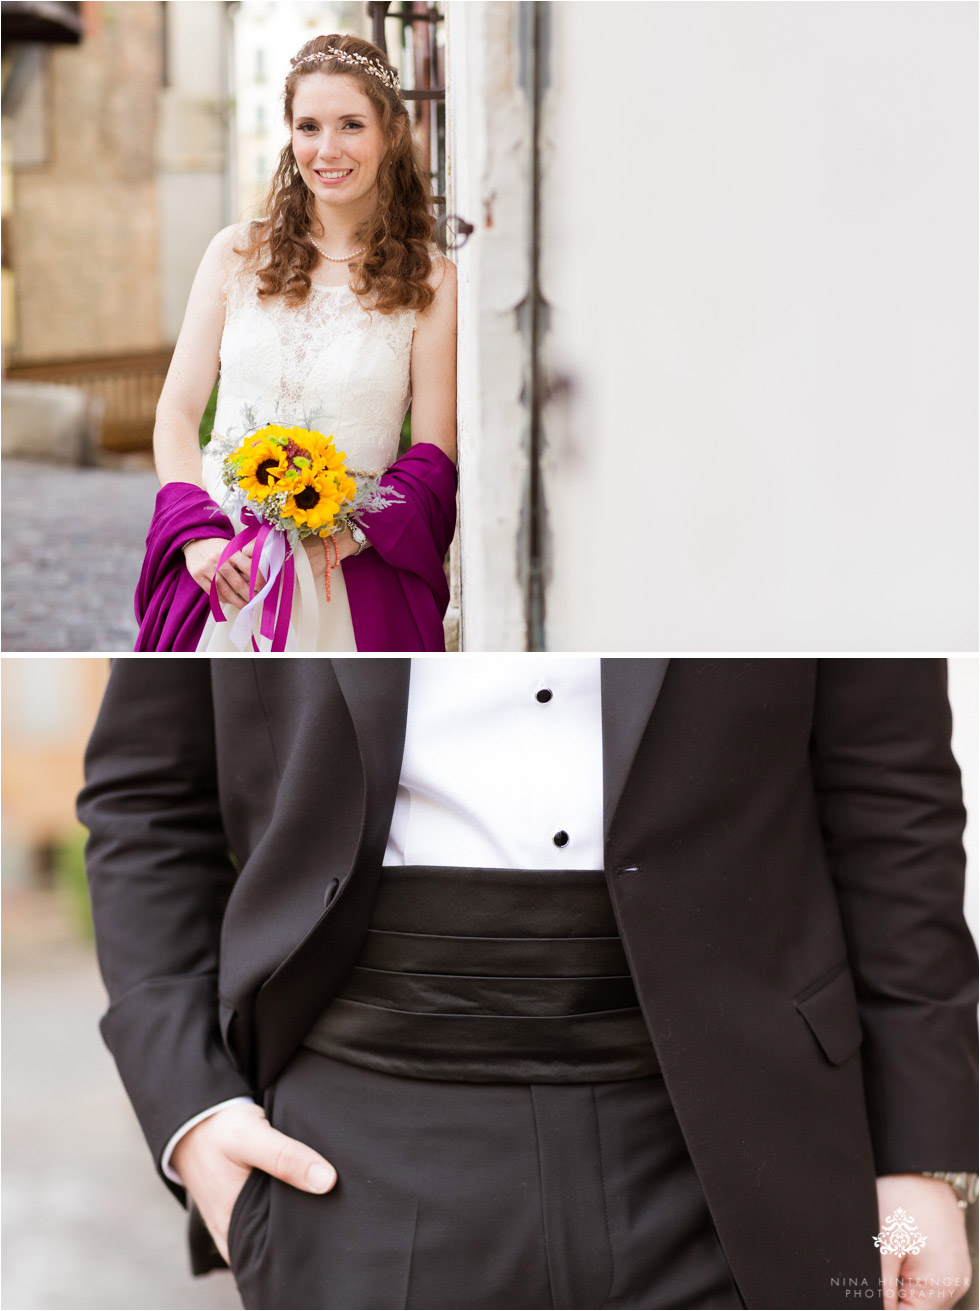 Detail shots of bride and groom during their bridal portraits in Bassano del Grappa - Blog of Nina Hintringer Photography - Wedding Photography, Wedding Reportage and Destination Weddings